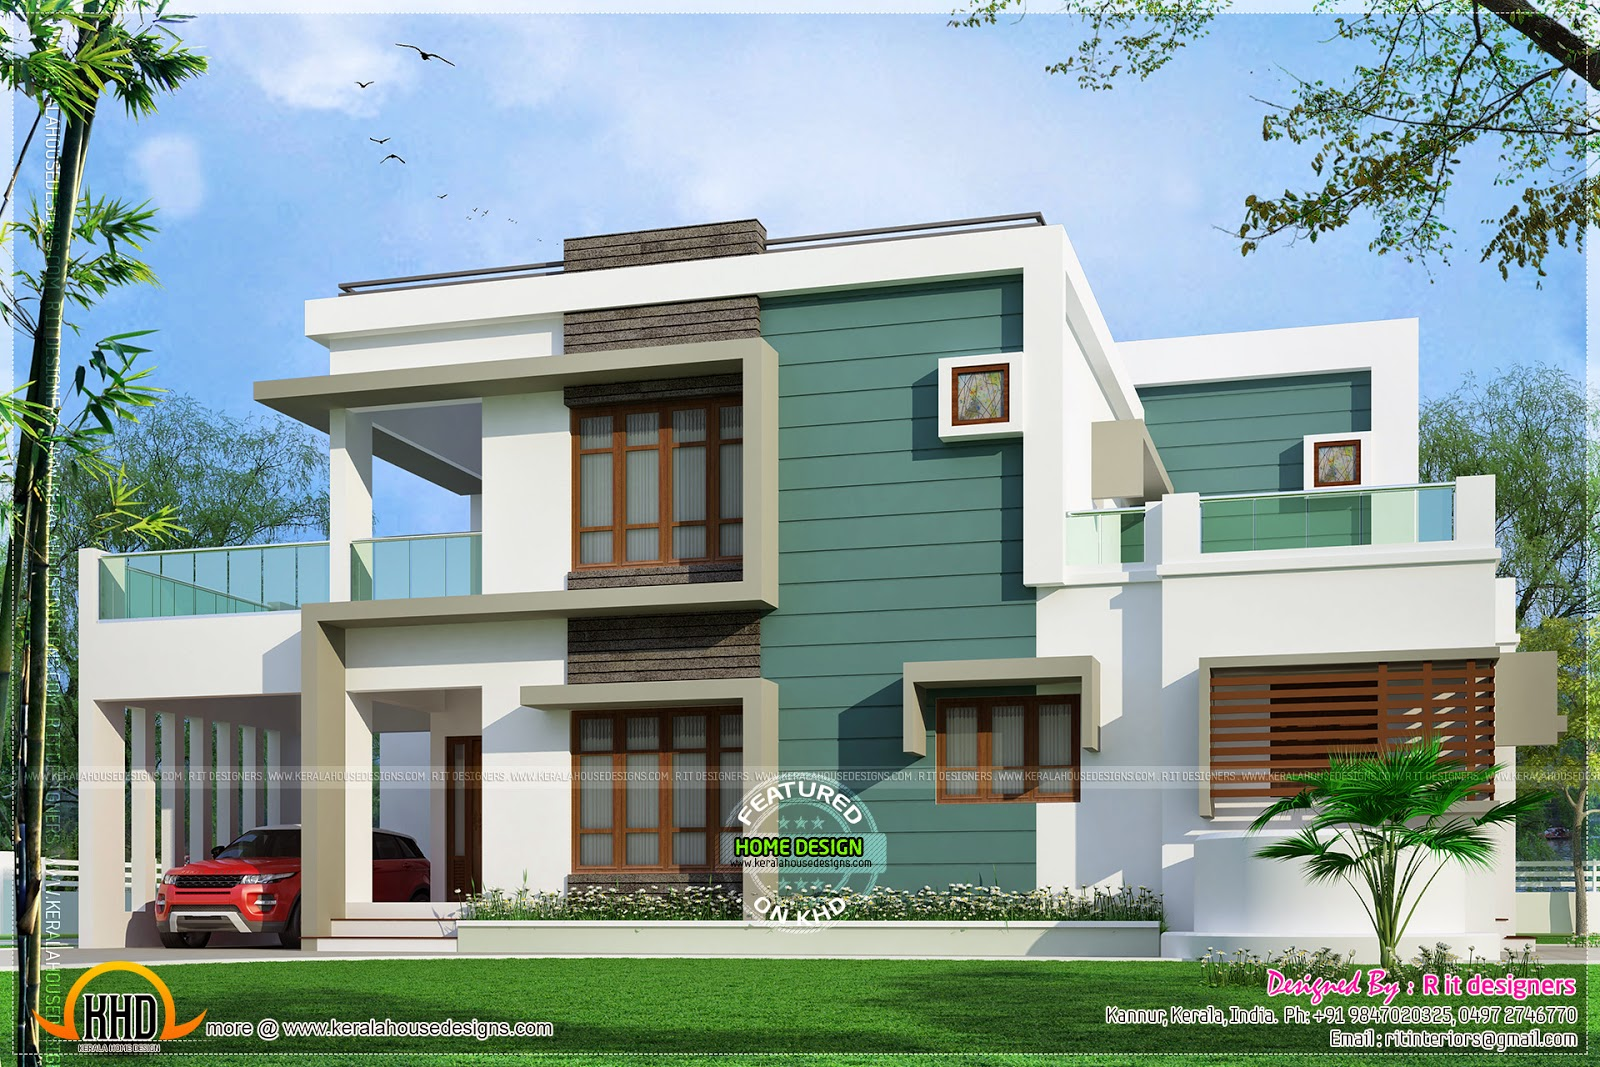 Kannur home design kerala home design and floor plans for Www homedesign com